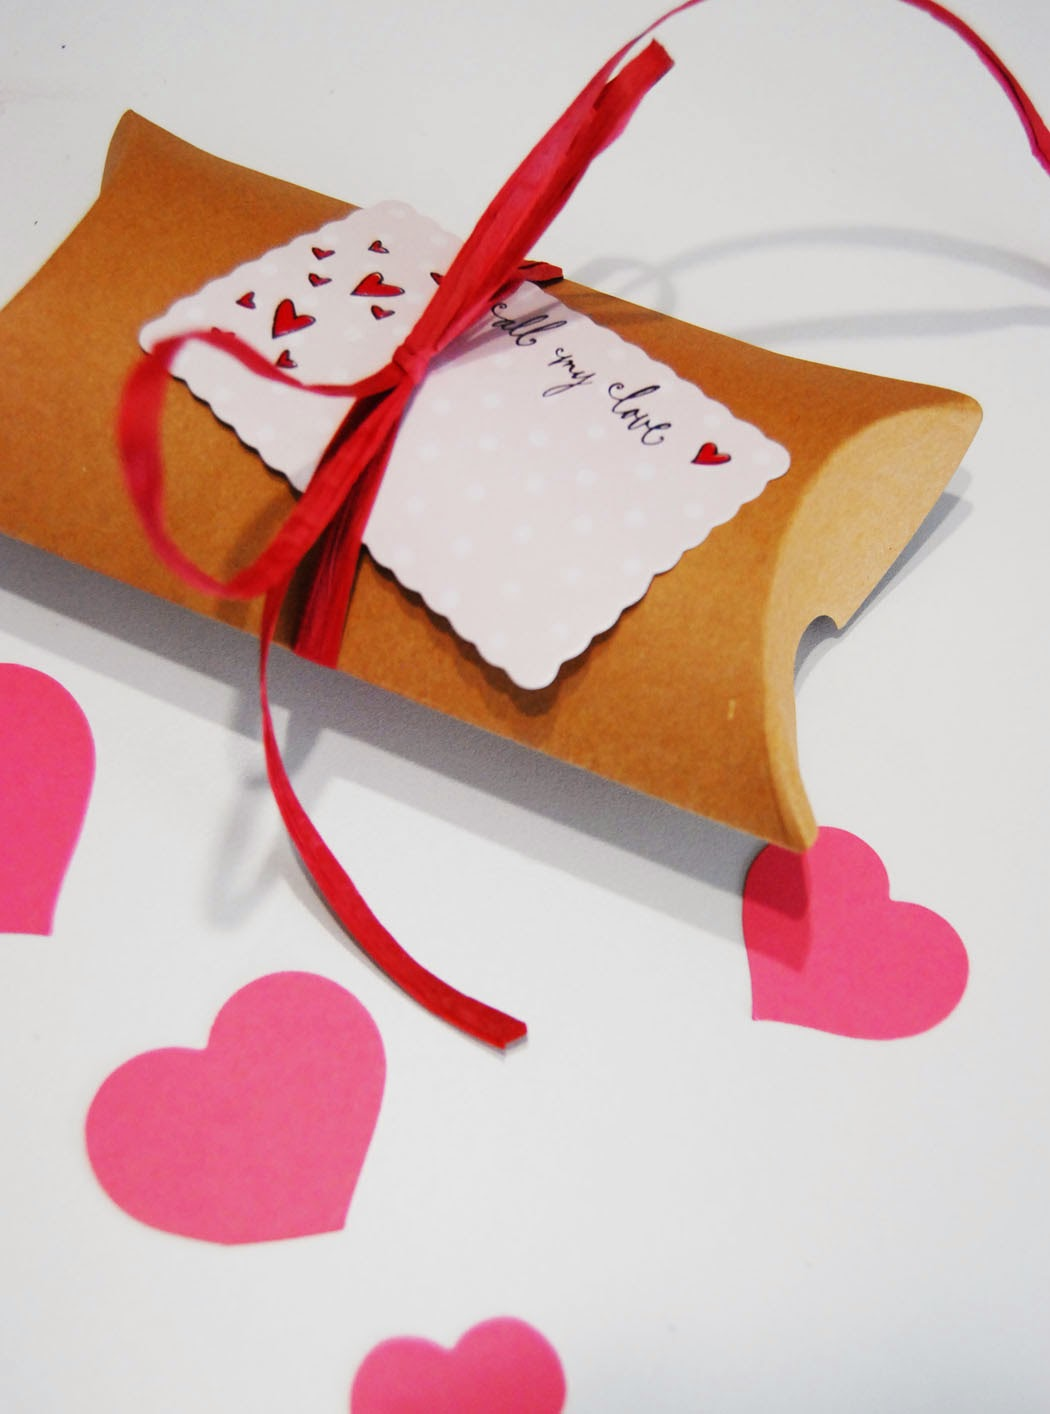 https://www.etsy.com/listing/206897695/valentines-day-recycled-gift-wrap-add-on?ref=shop_home_active_3